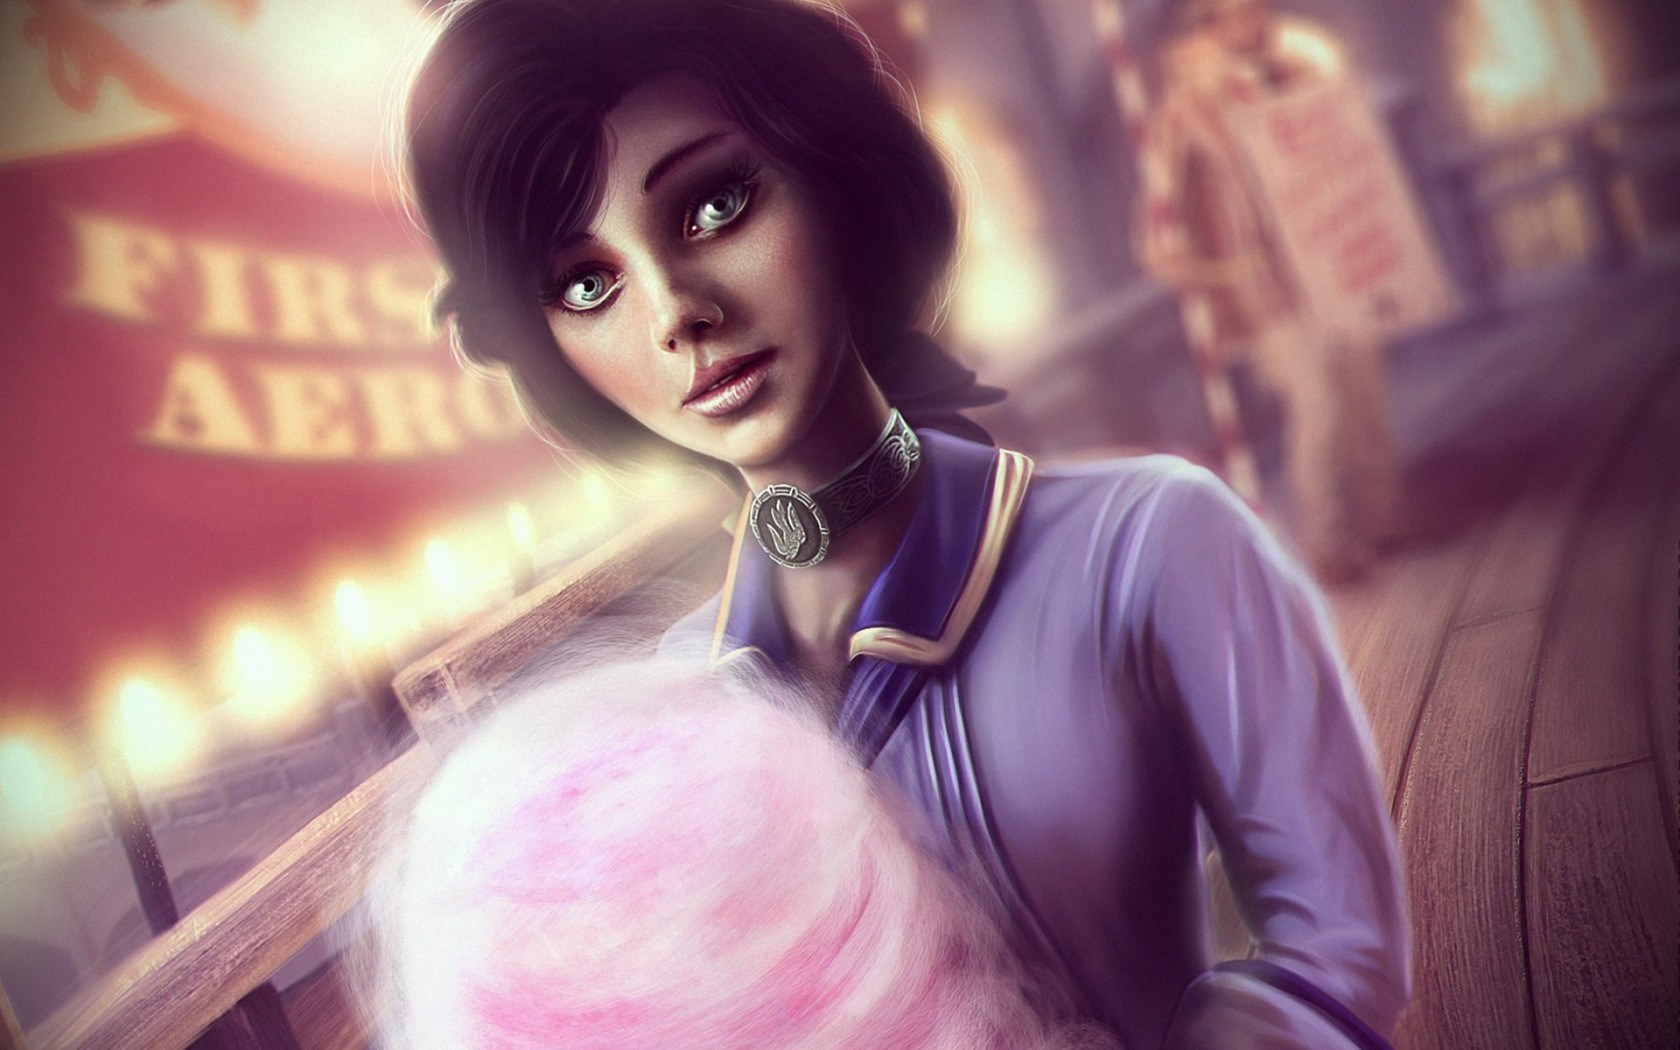 Art BioShock Girl Game